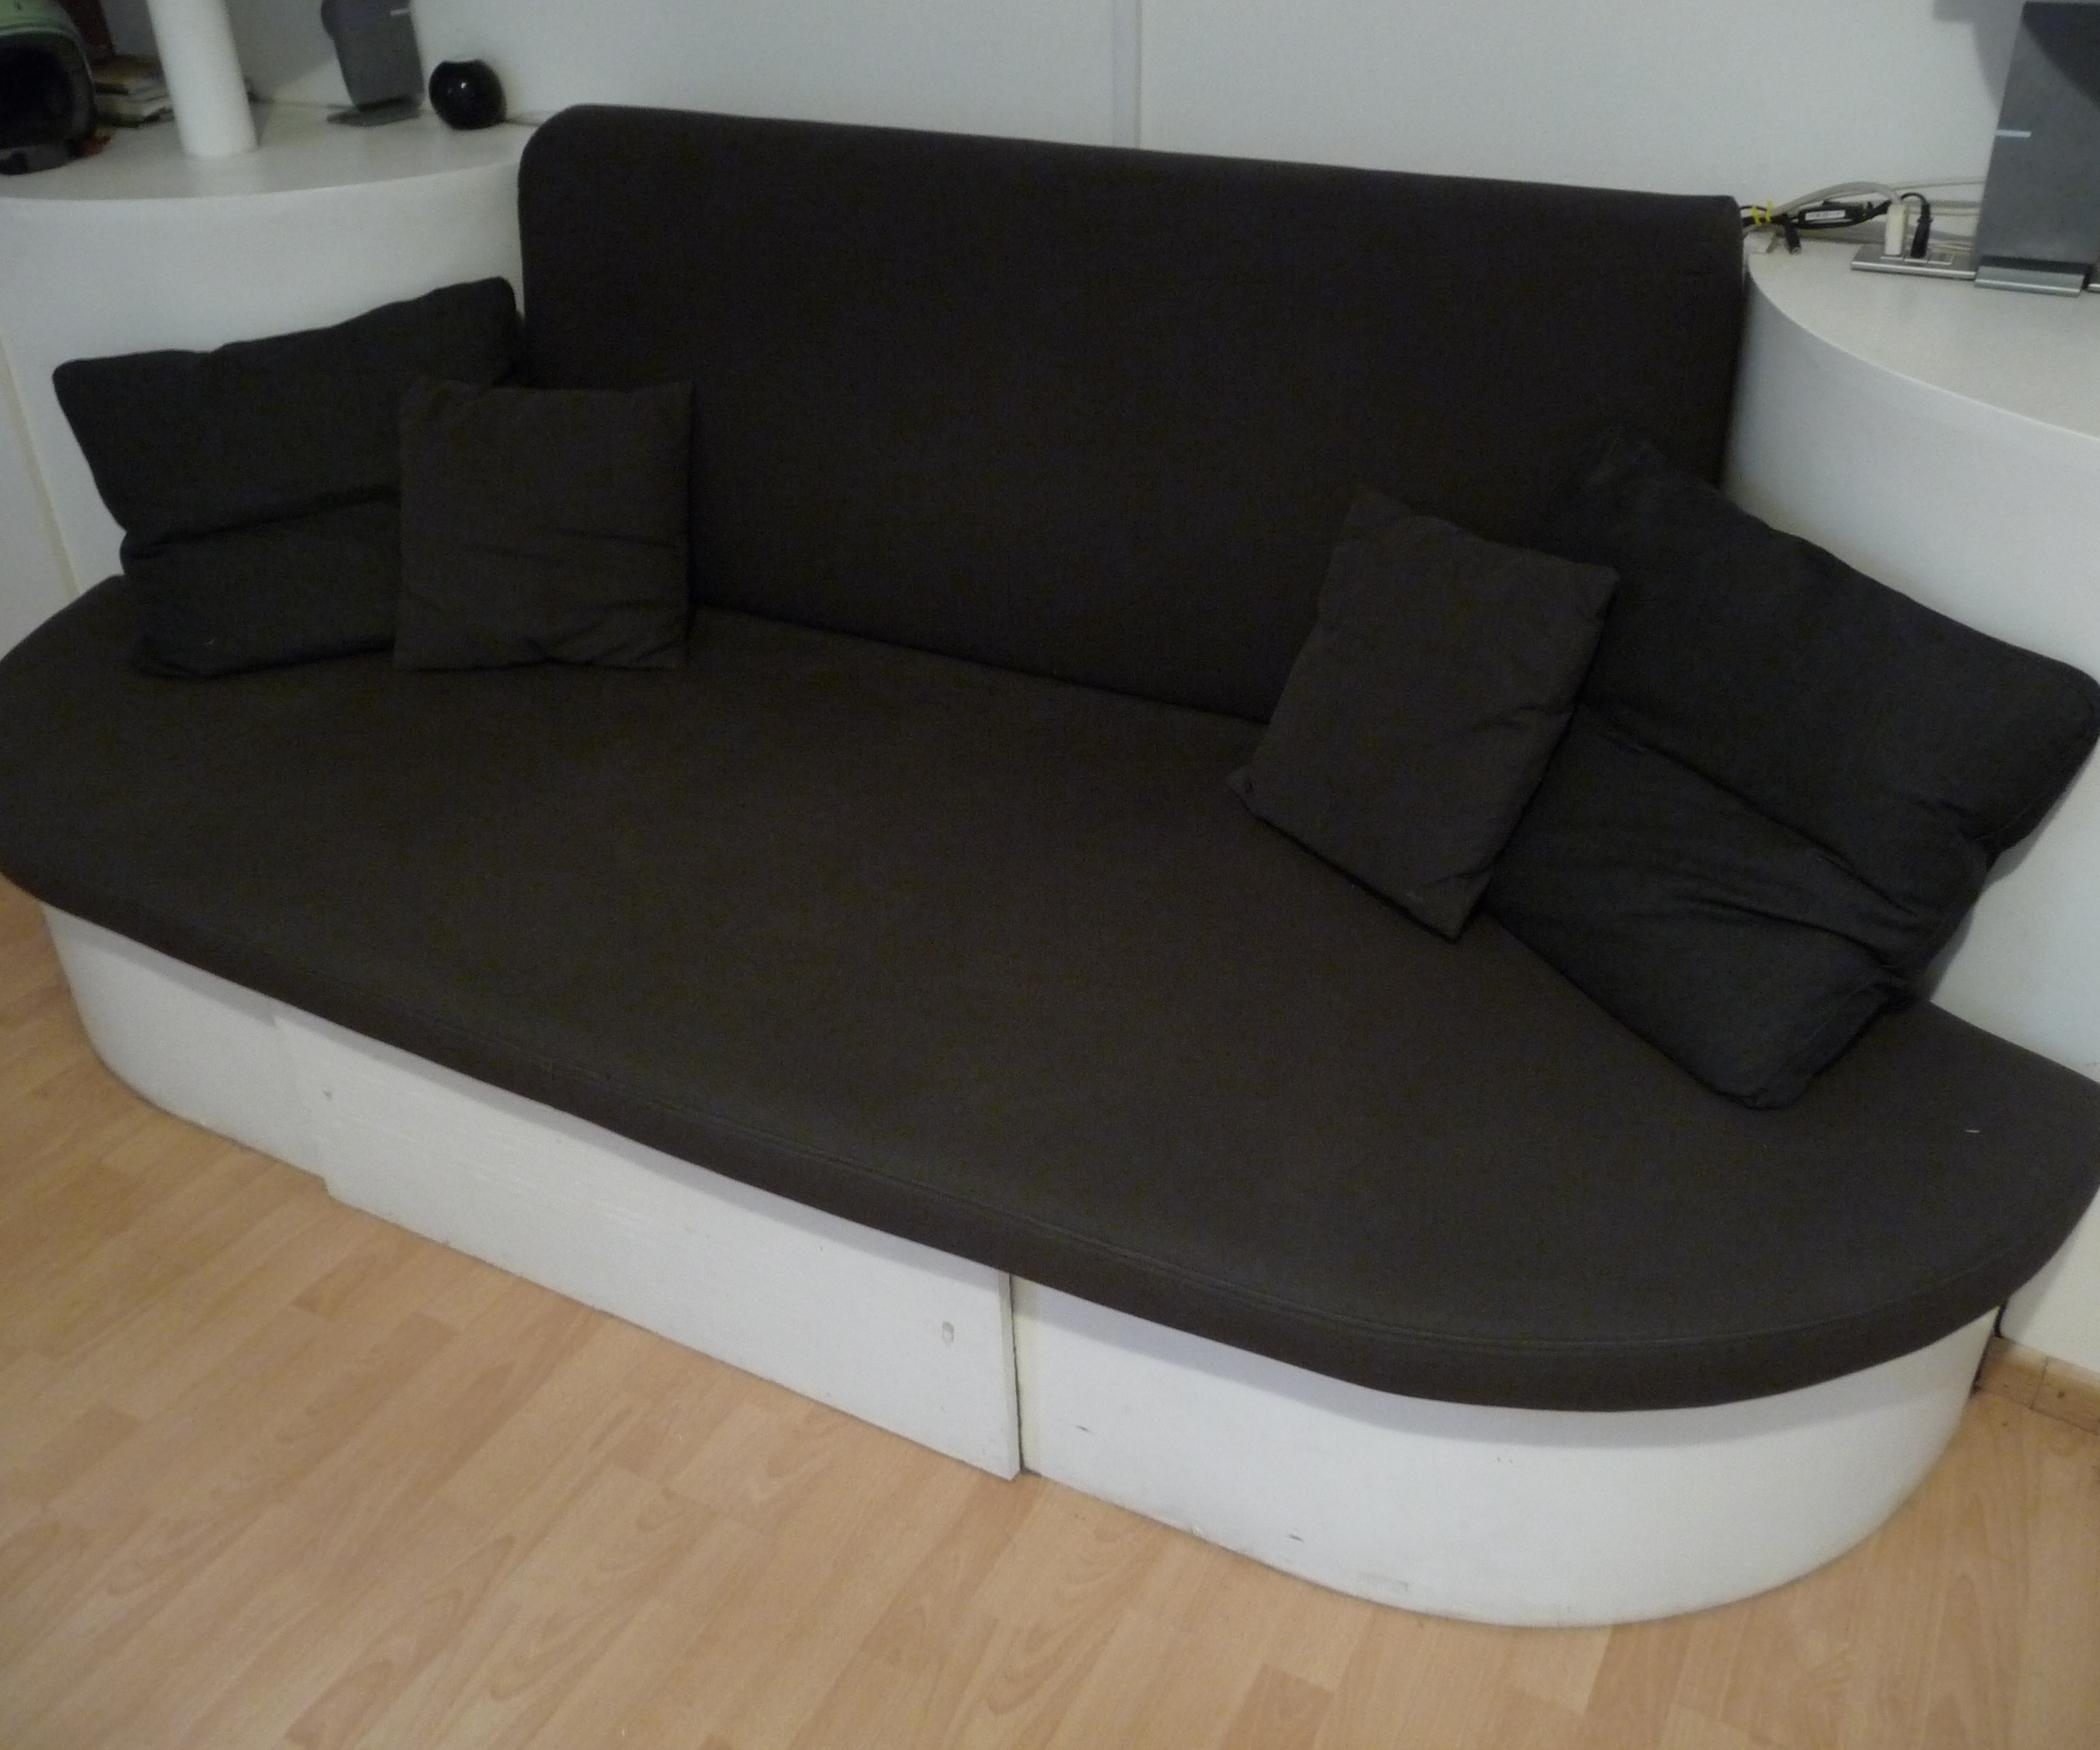 Diy Stylish Sofa Bed: 7 Steps (With Pictures) Inside Giant Sofa Beds (View 17 of 20)